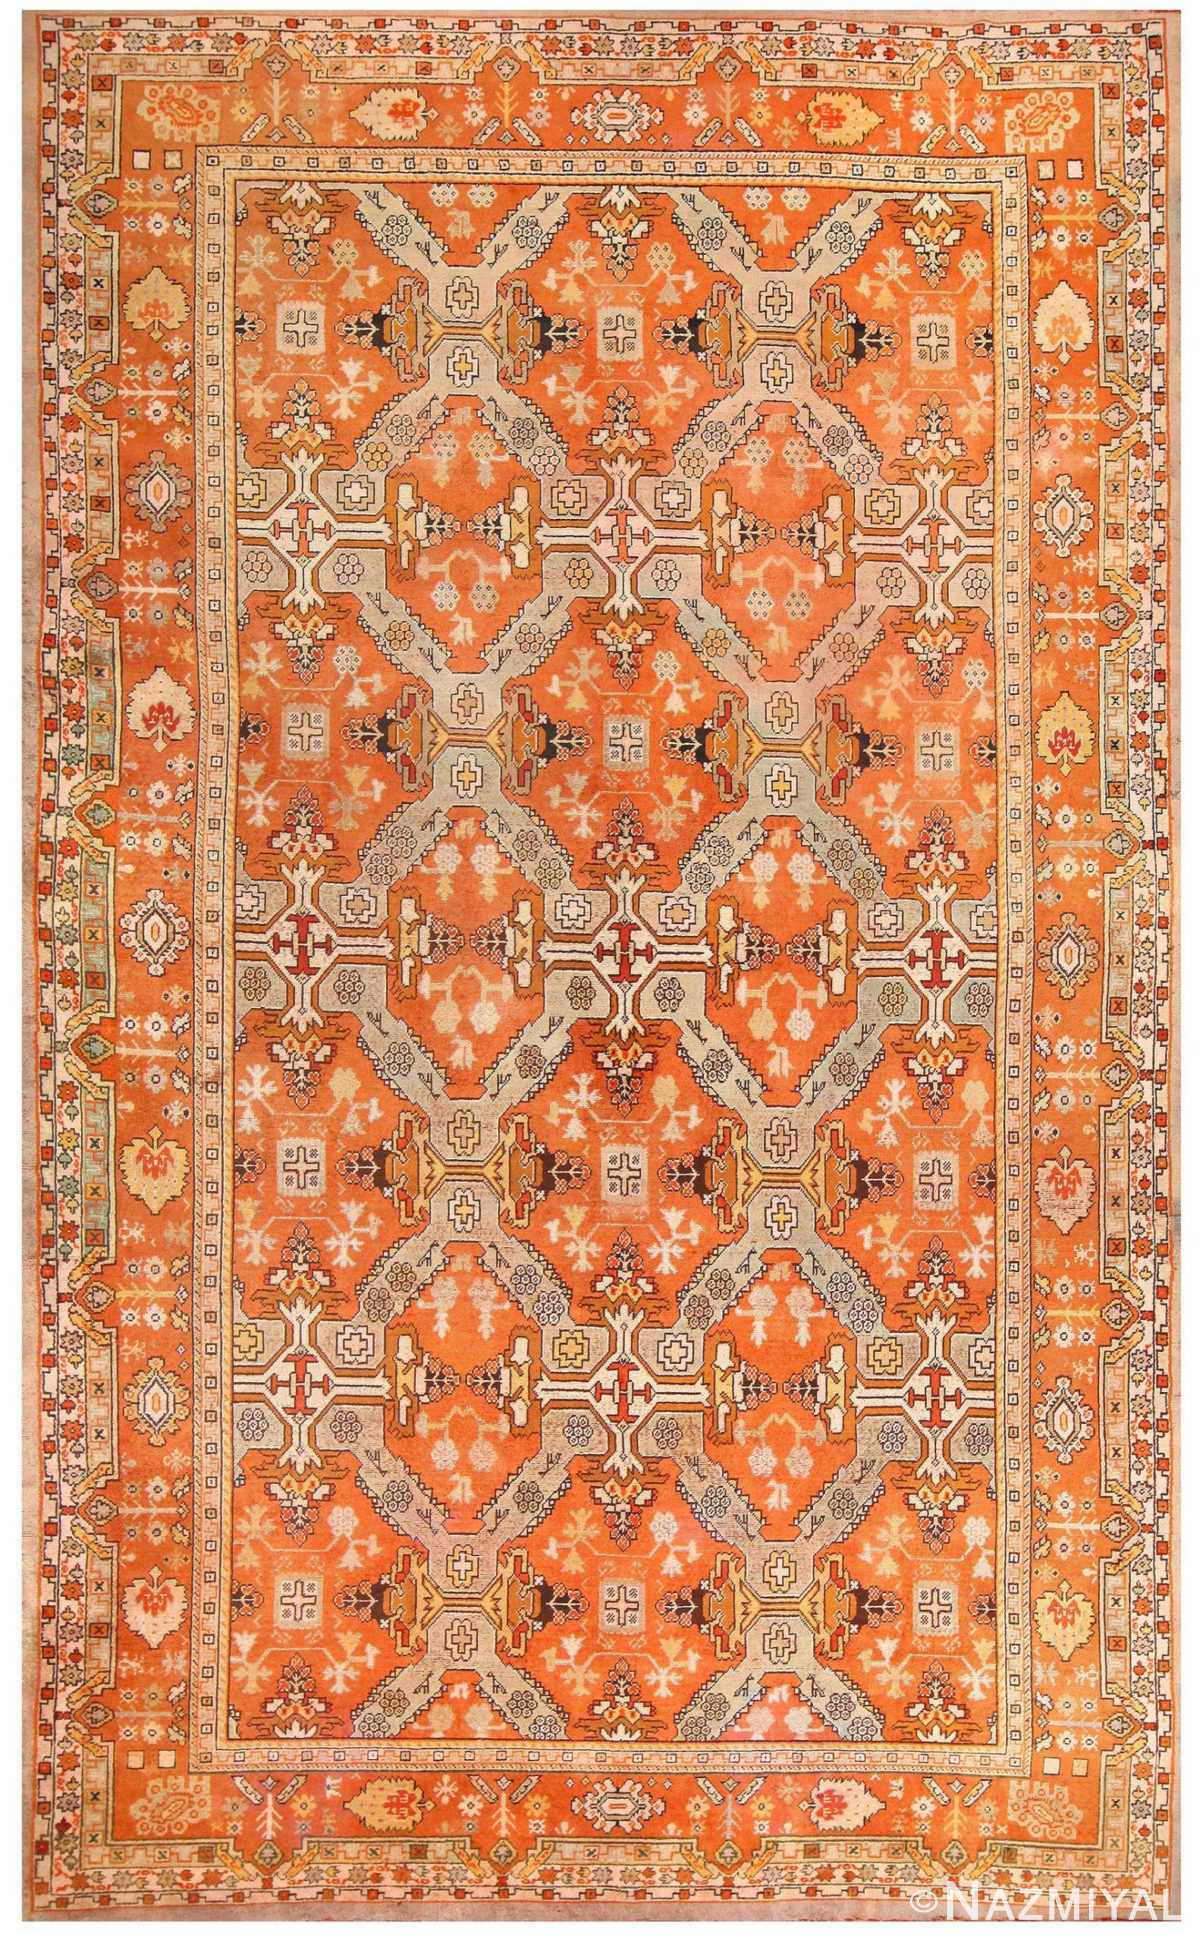 Oversized Antique Turkish Oushak Carpet 48371 Nazmiyal